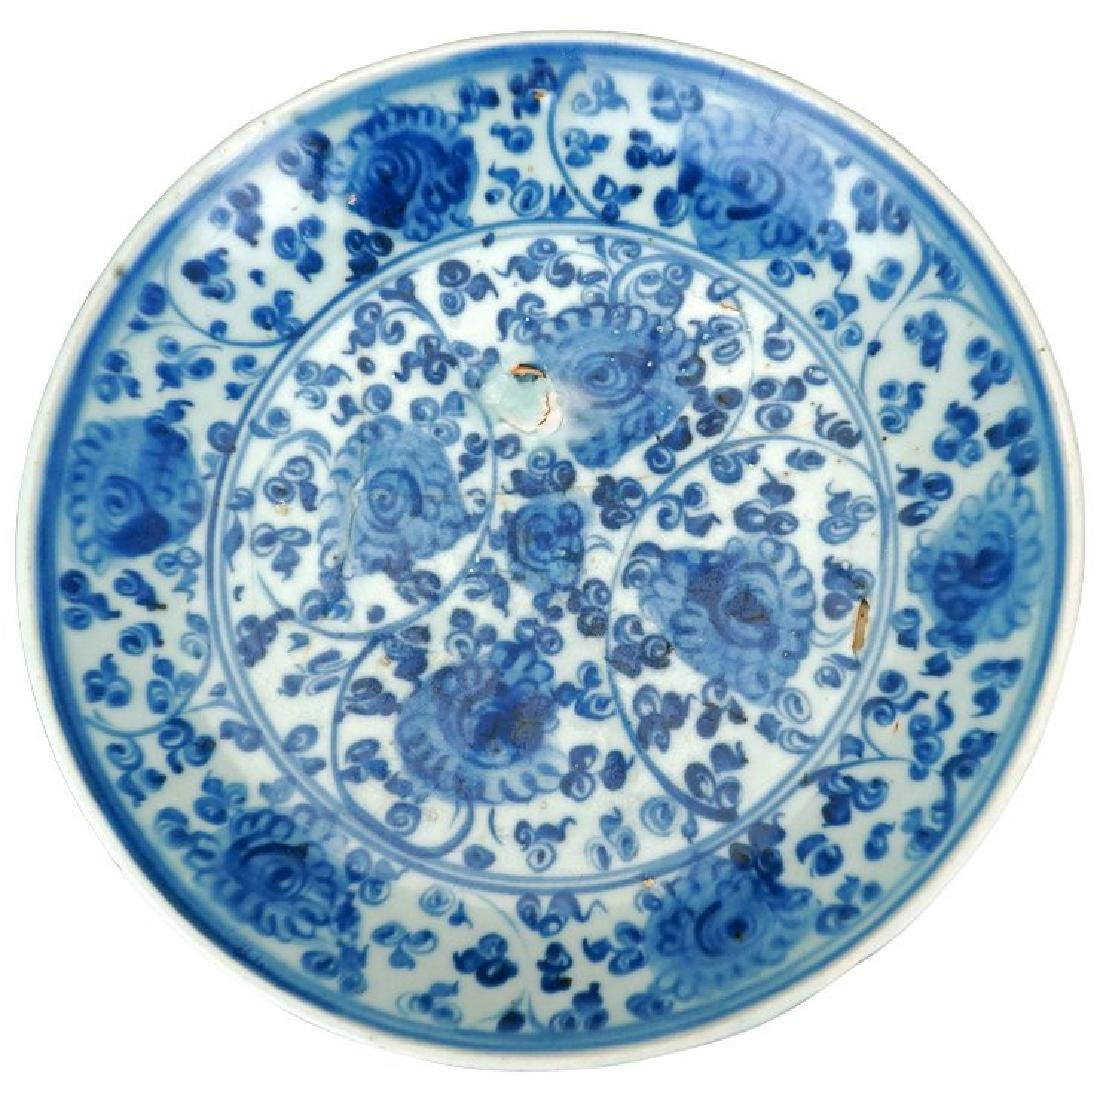 Large and deep Chinese Ming blue and white porcelain